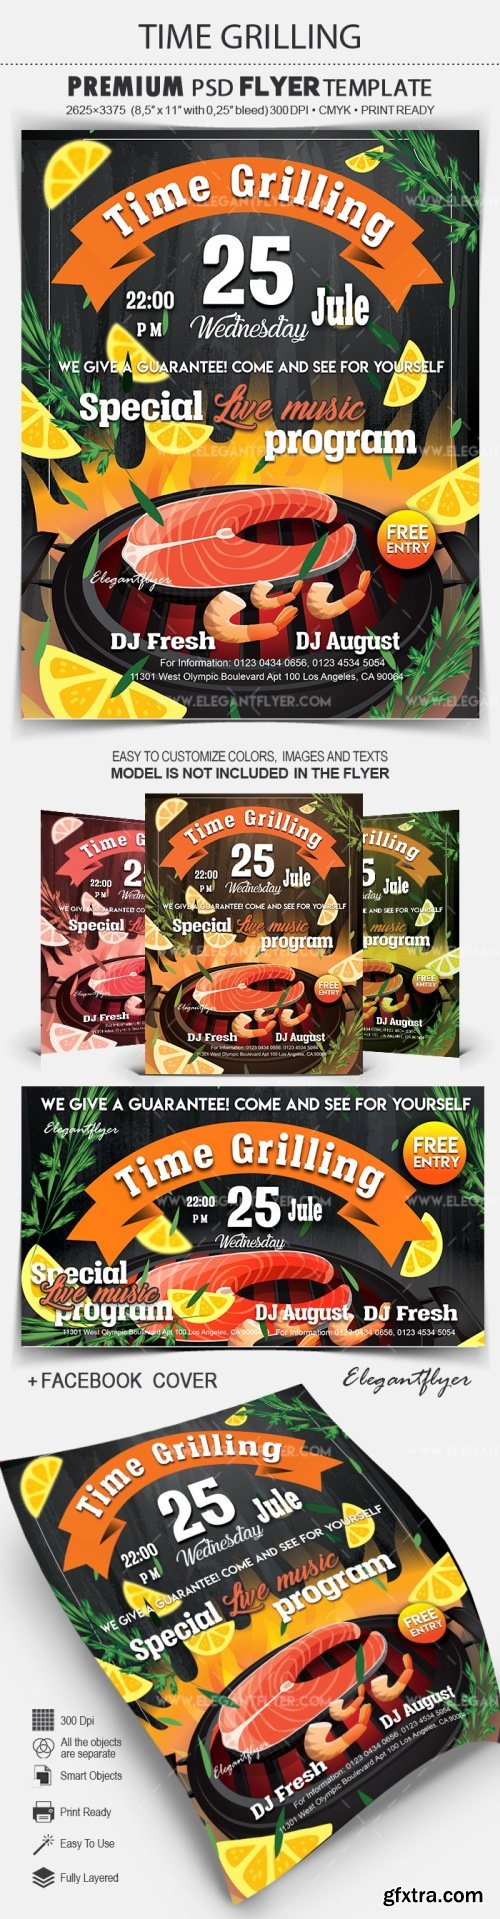 Time Grilling – Flyer PSD Template